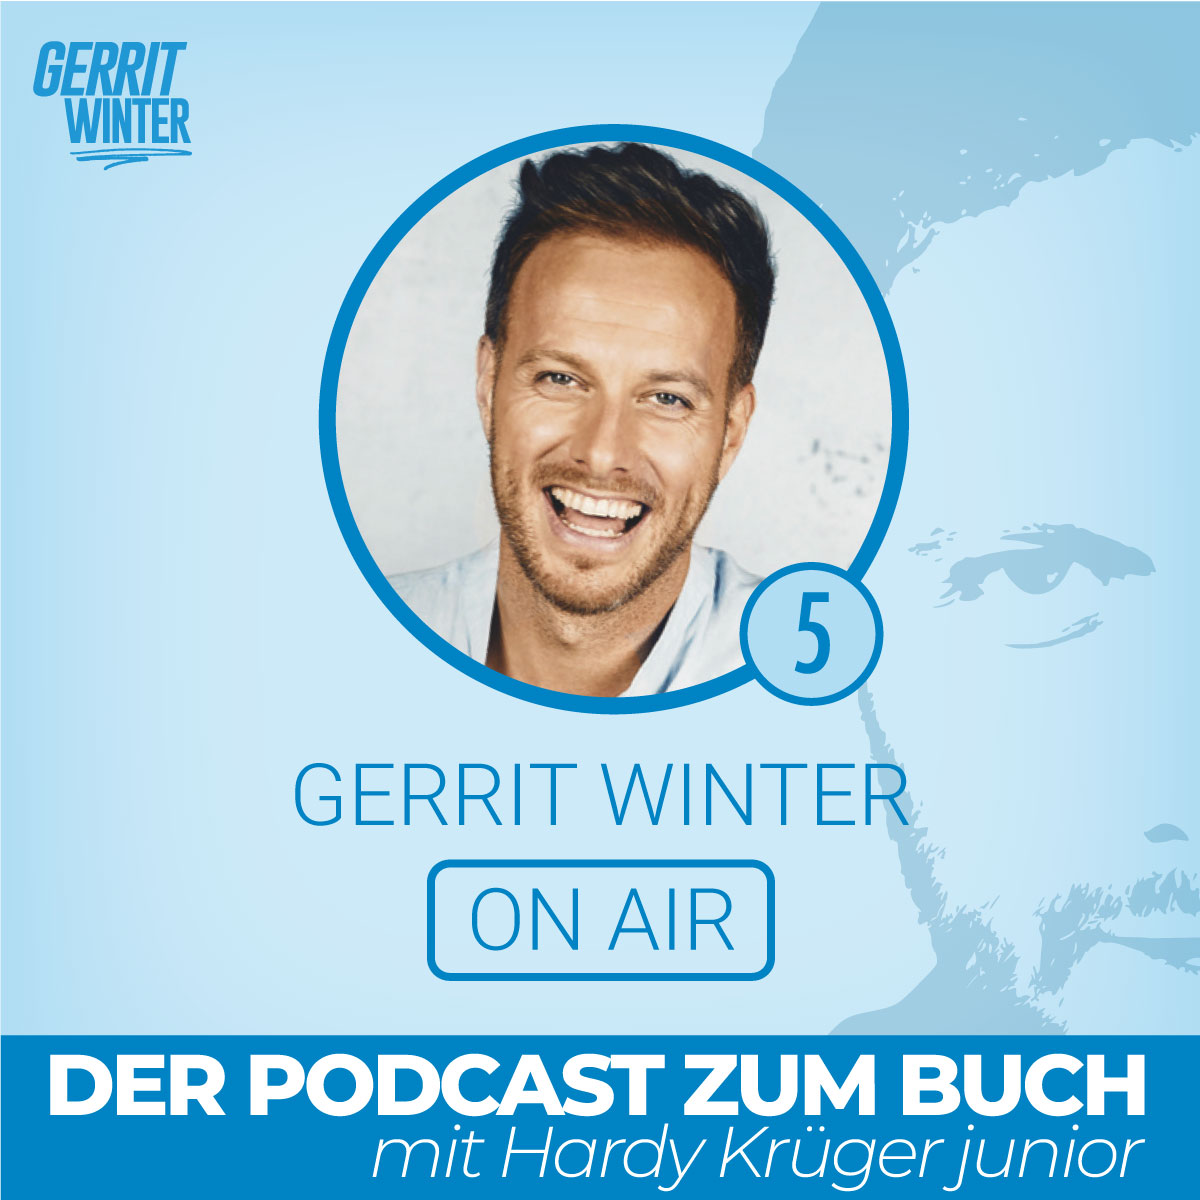 Gerrit Winter Podcast mit Hardy Krüger Junior